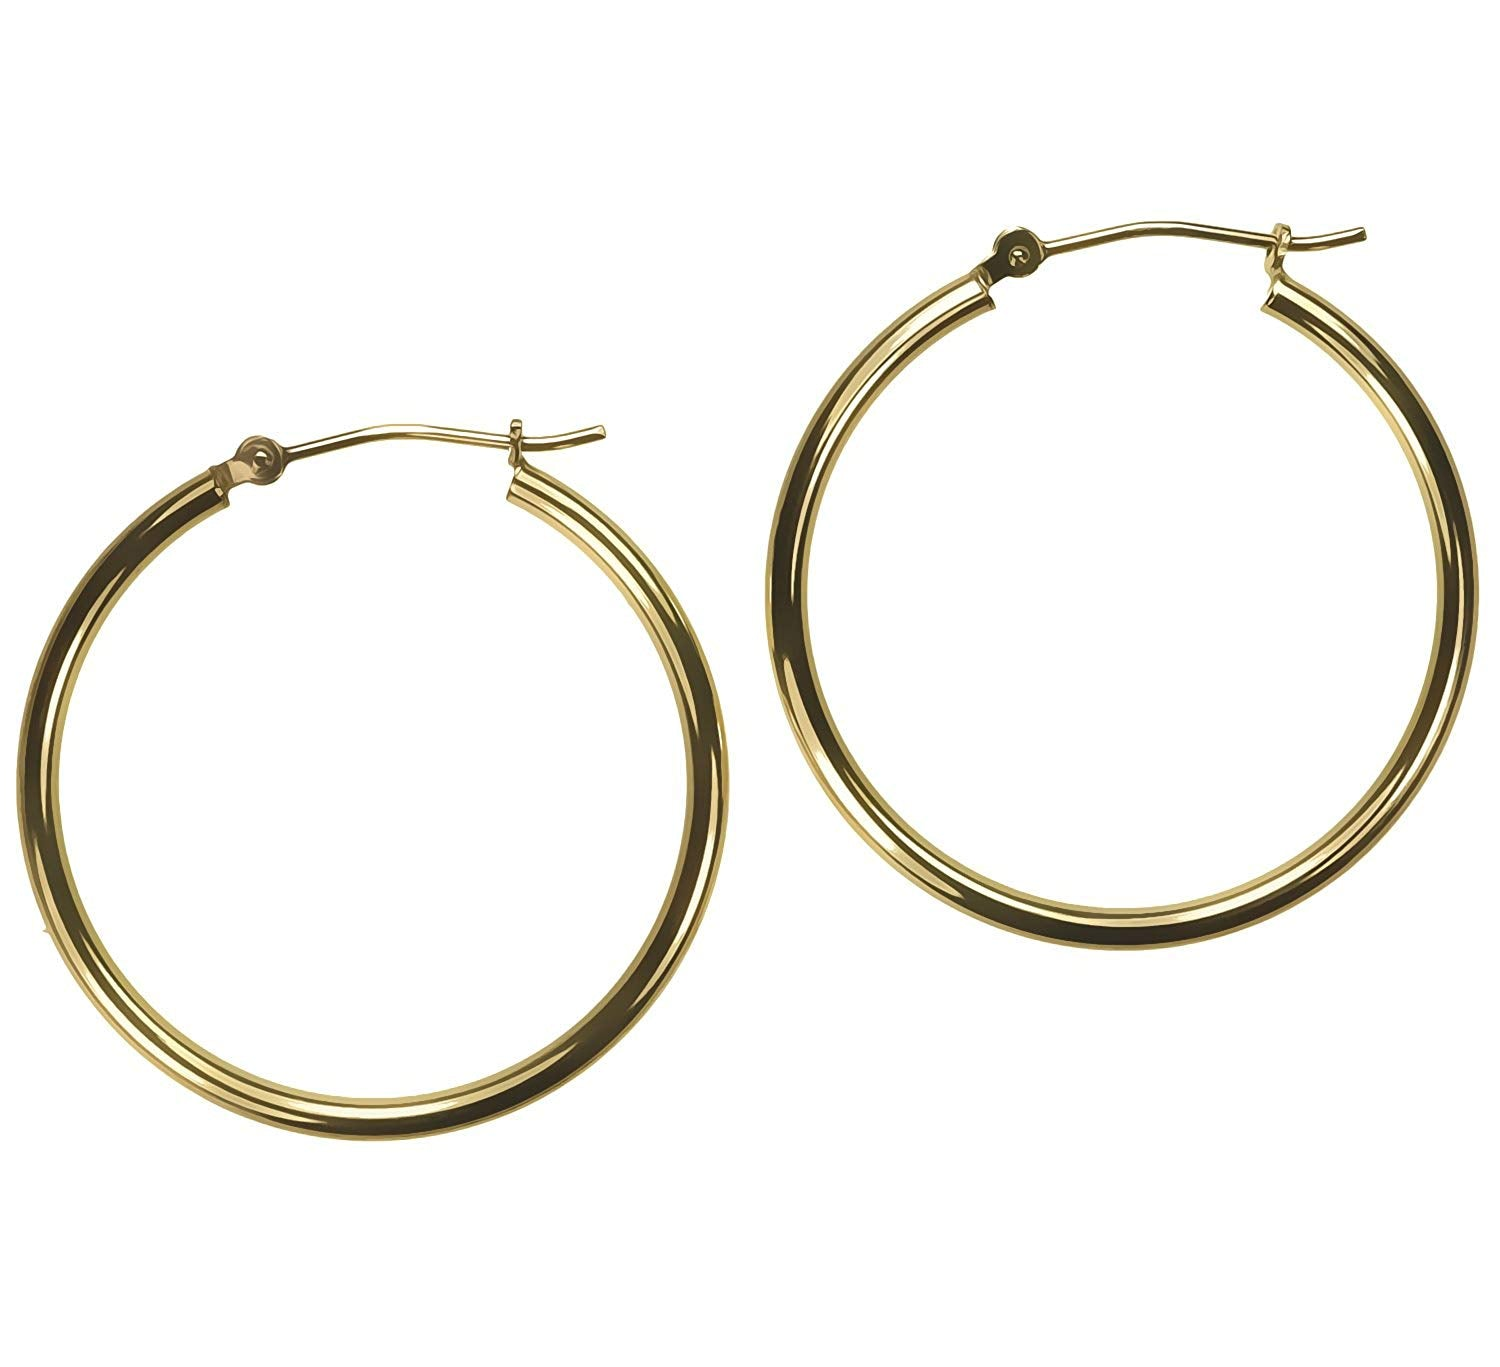 14K Gold 25mm x 2mm Tube Hoop Earrings